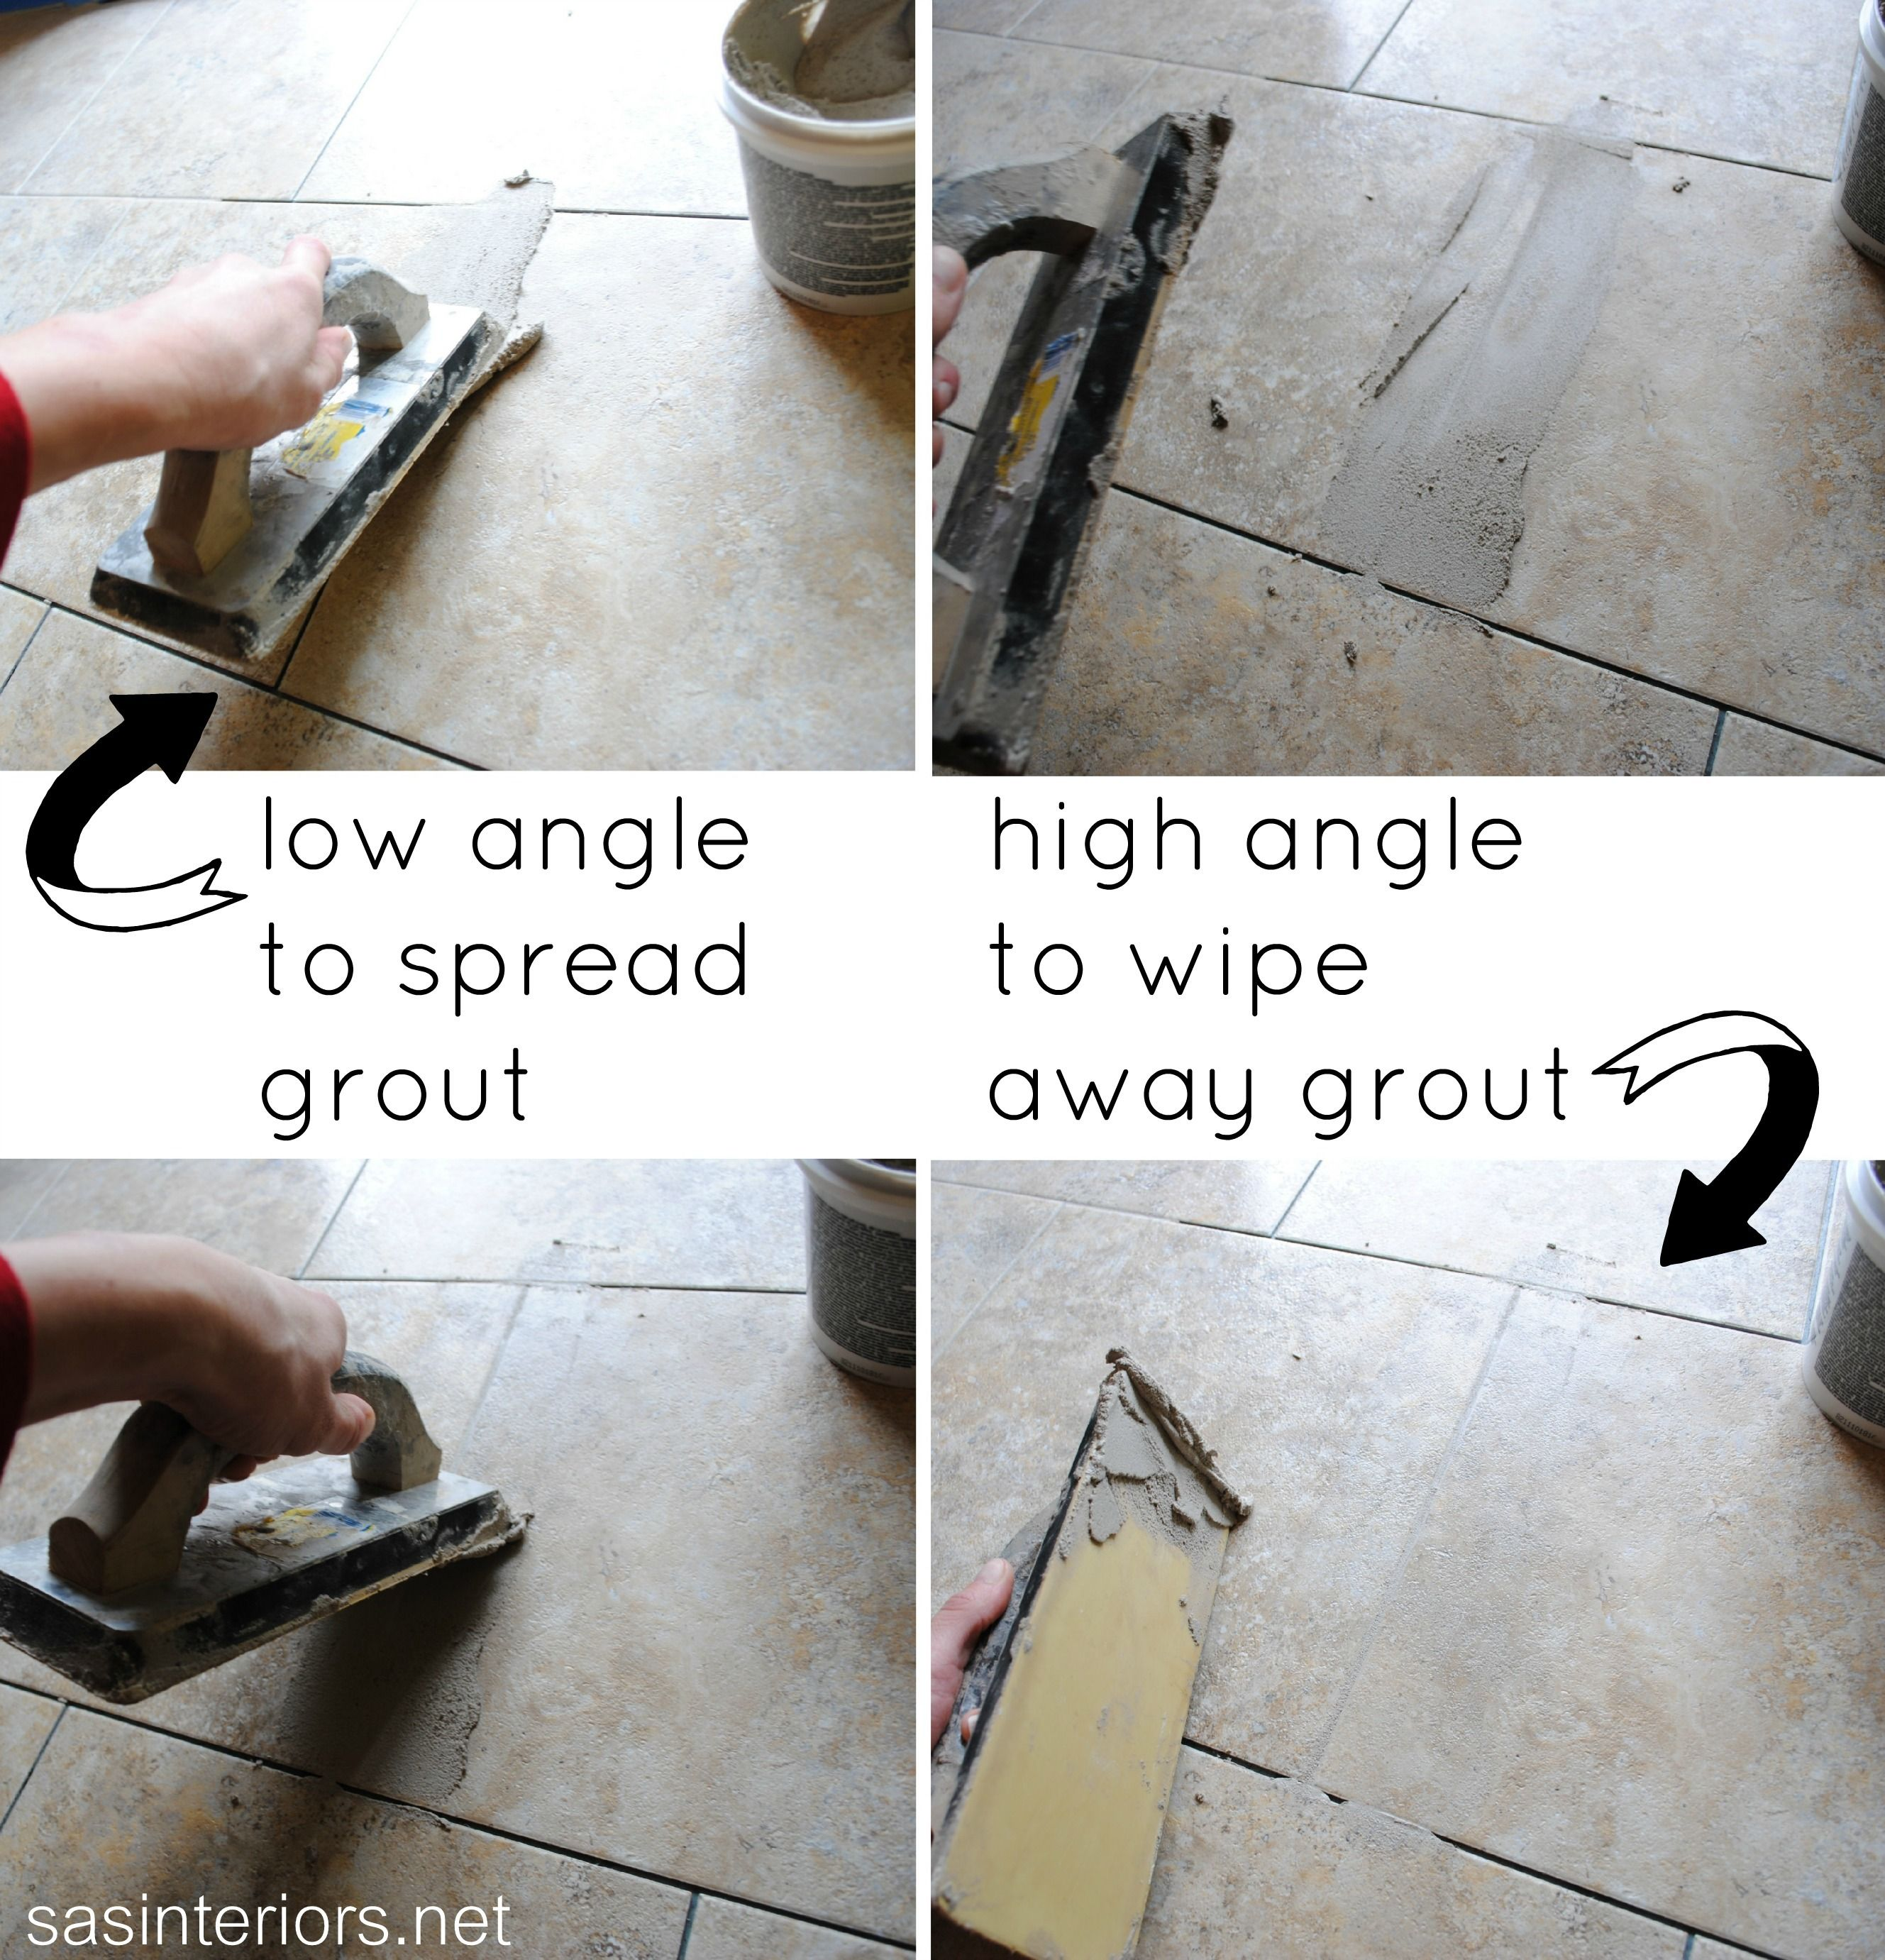 Do it yourself how to install and grout luxury vinyl tile it looks do it yourself how to install and grout luxury vinyl tile it looks just solutioingenieria Choice Image